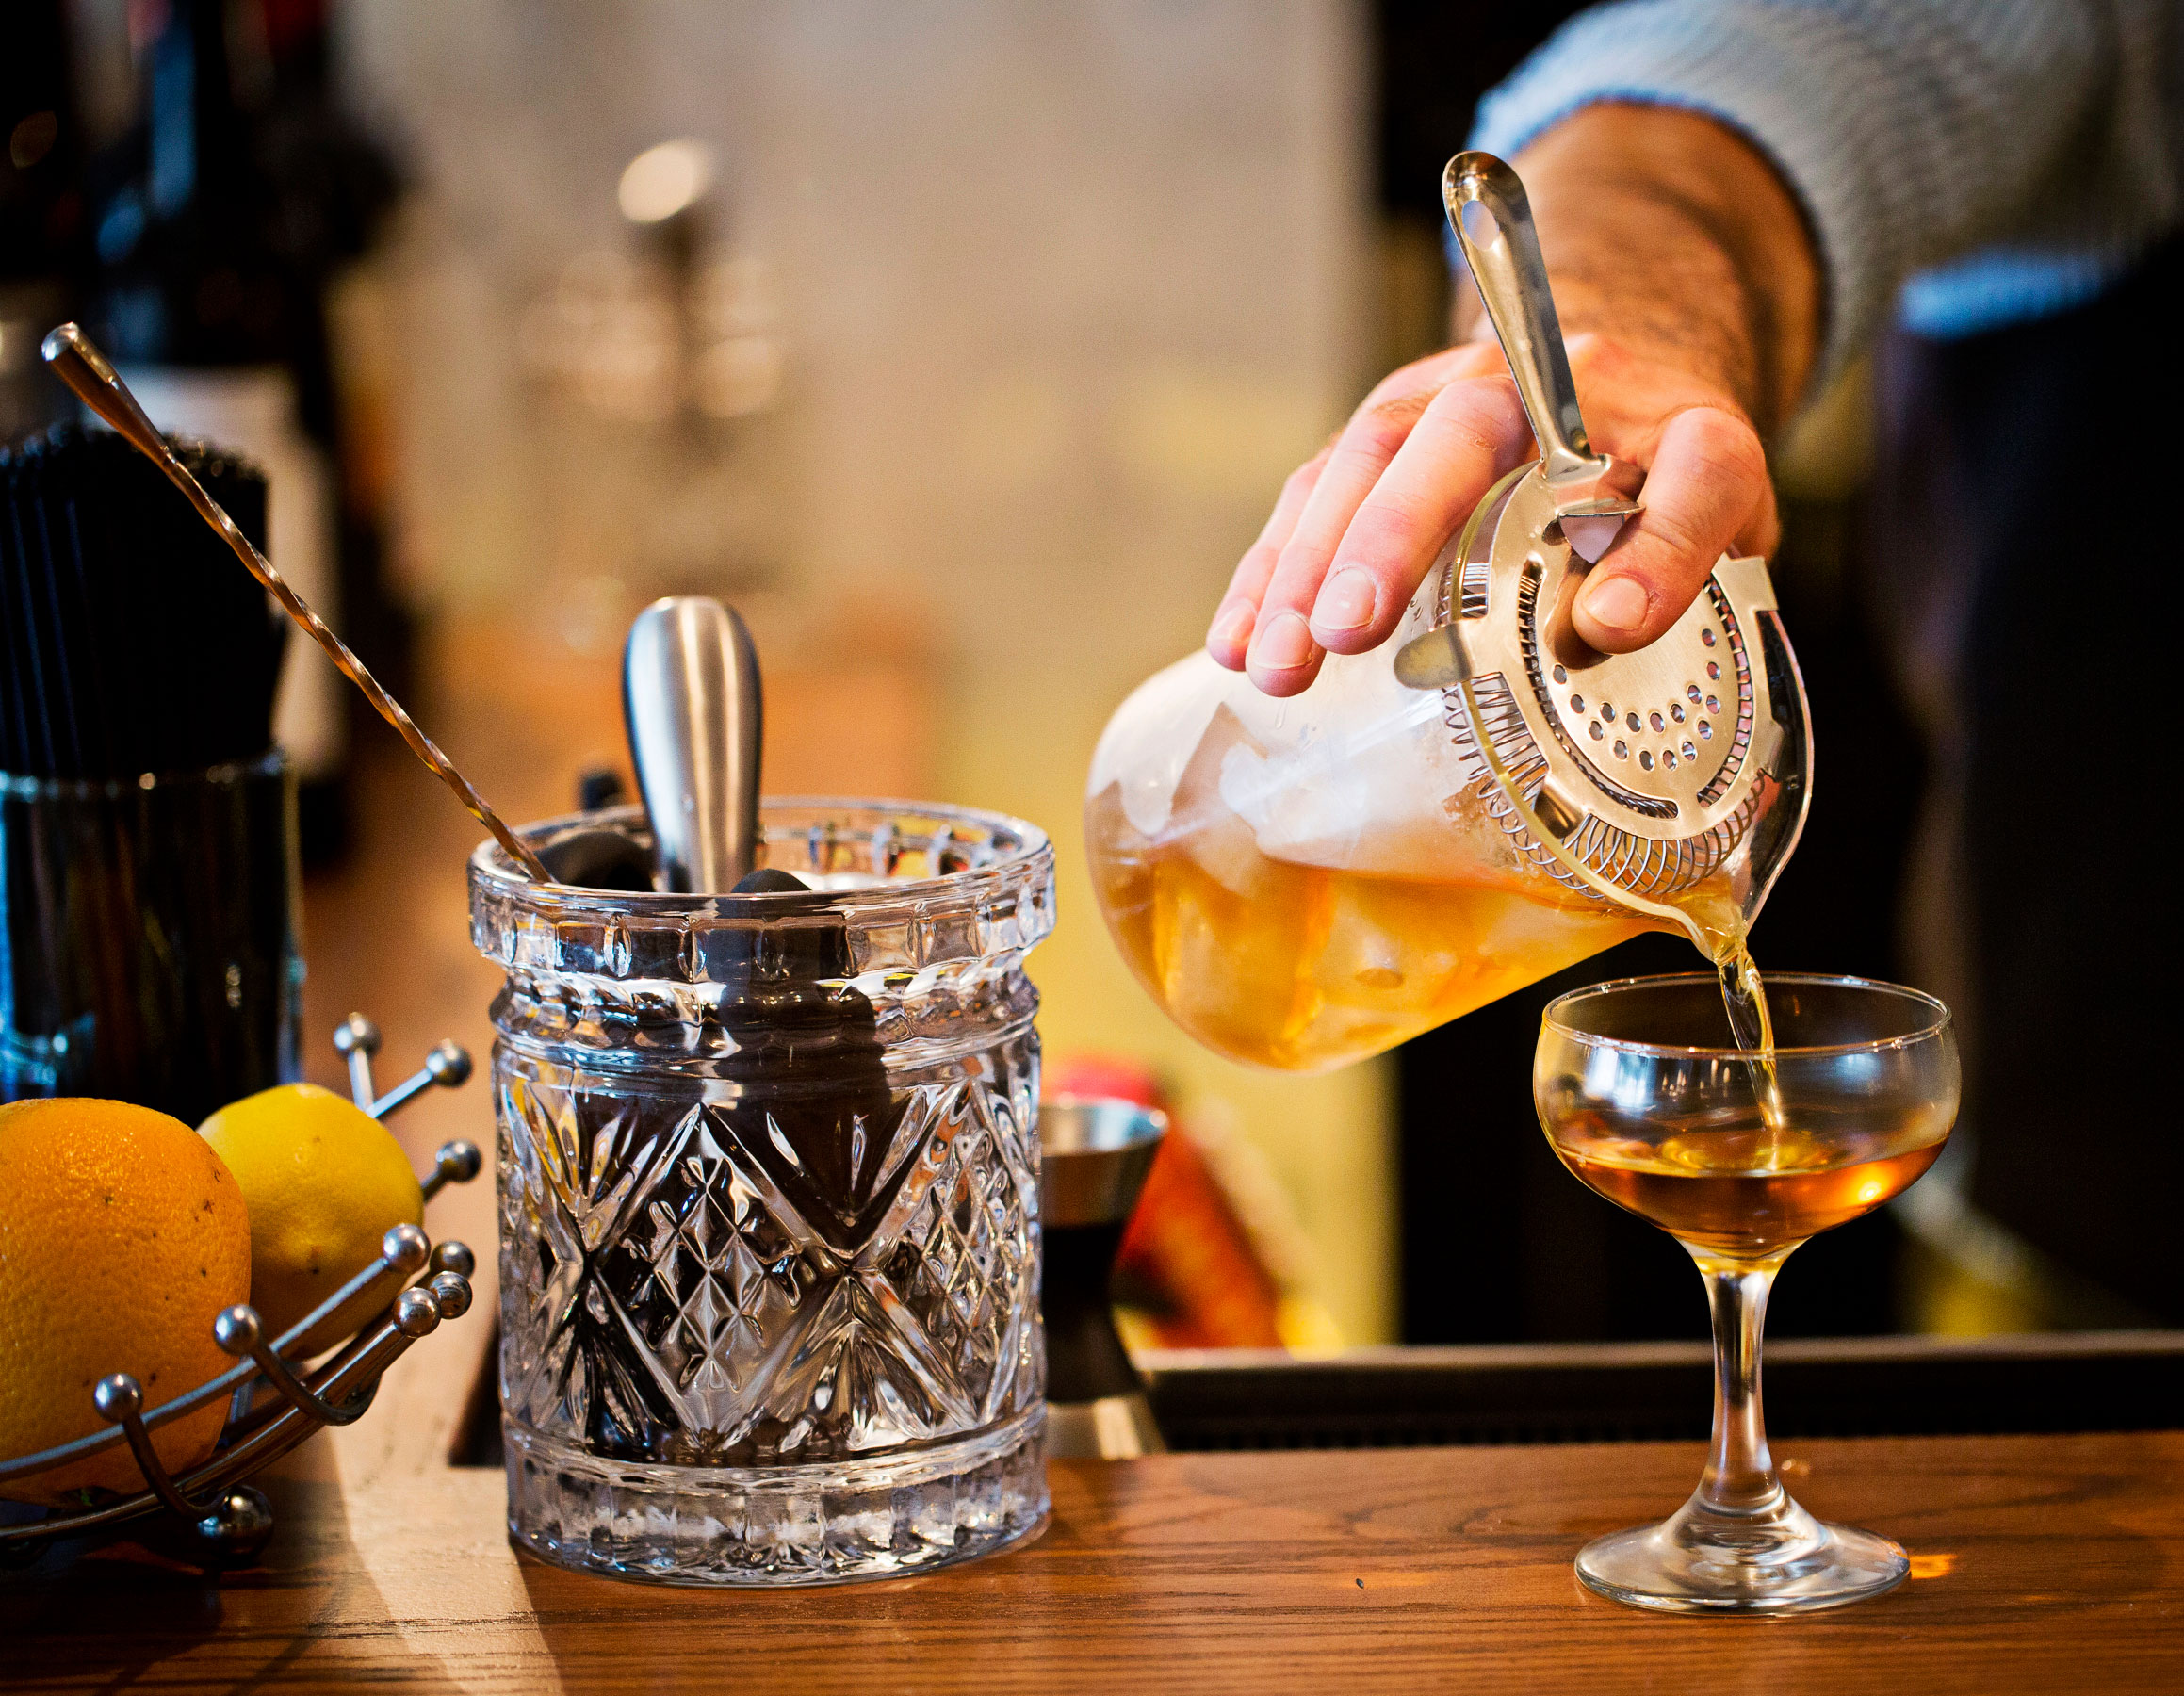 bartender pouring a craft cocktail into a glass